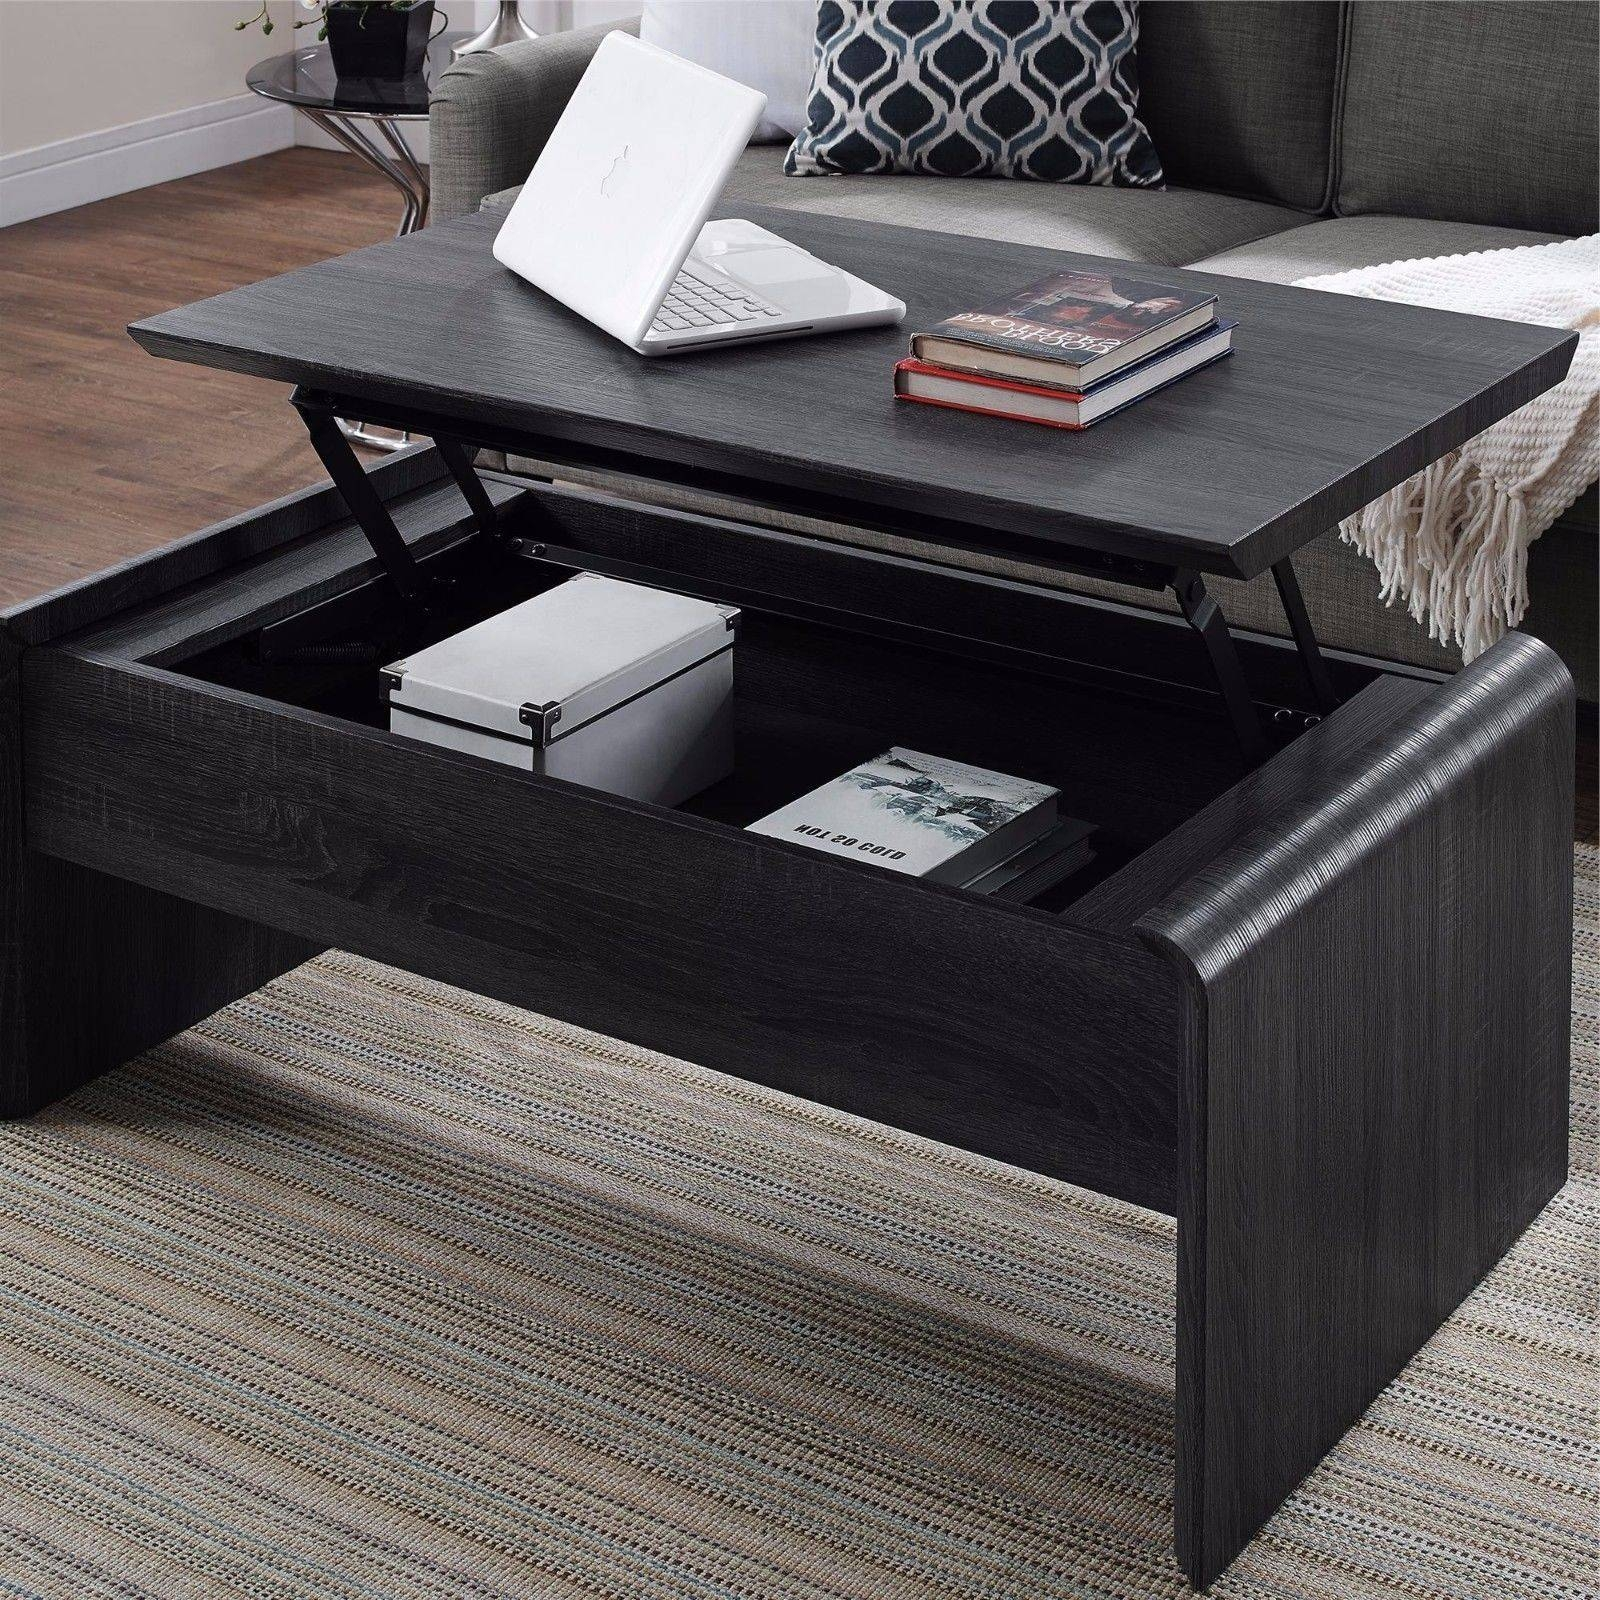 Lift Top Coffee Table Living Room Furniture Desk Modern Storage regarding Lift Top Coffee Tables With Storage (Image 17 of 30)